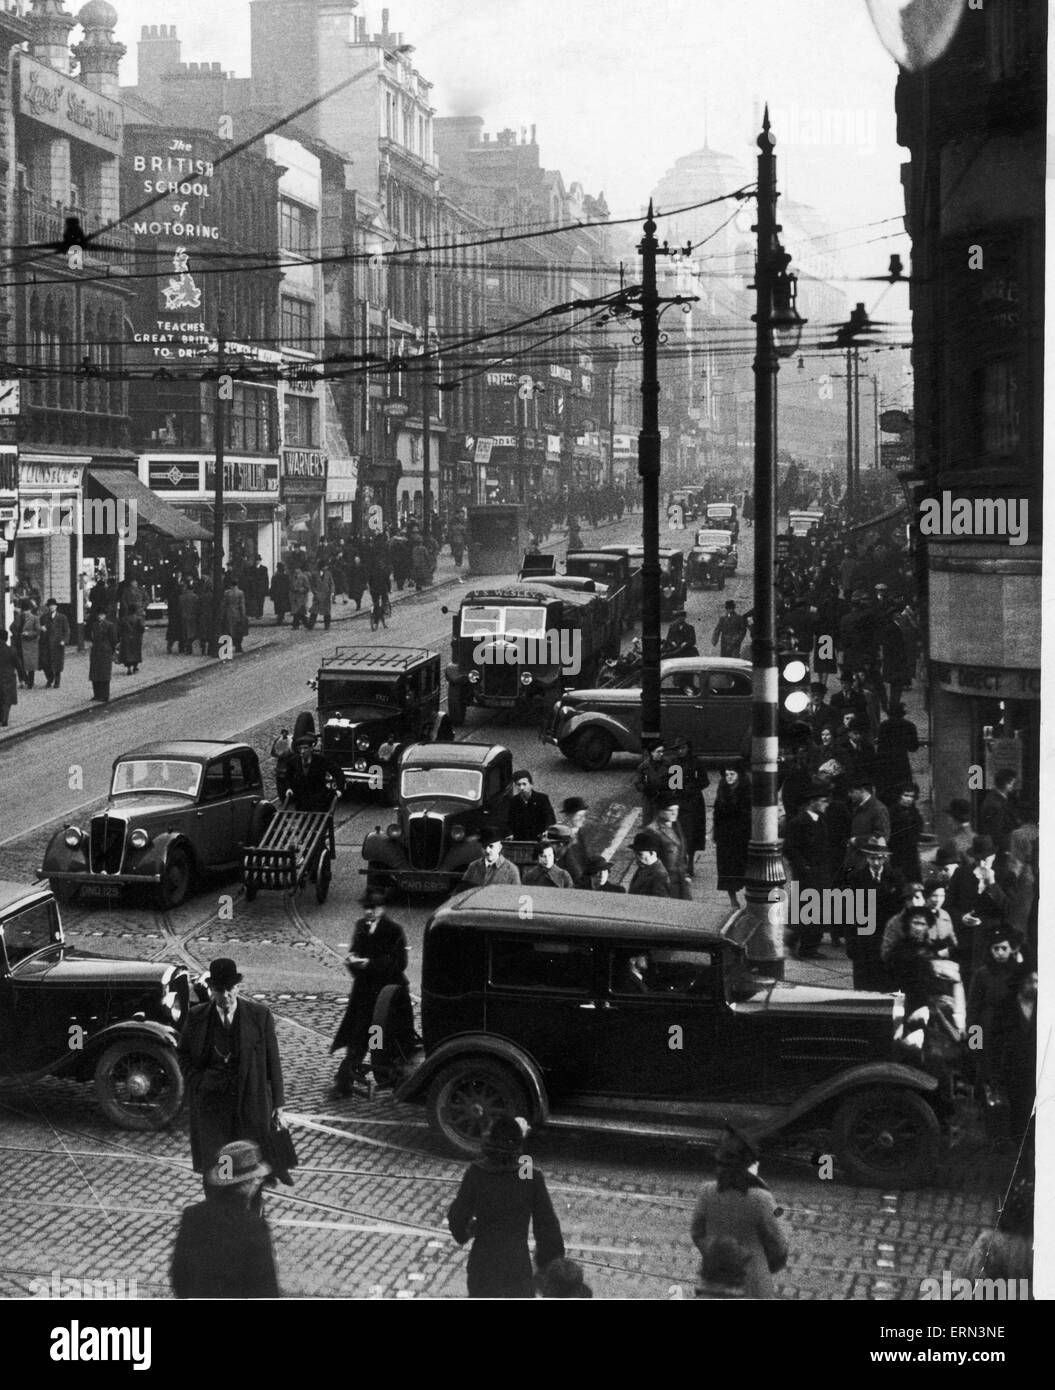 A busy Market Street, Manchester seen here in the 1930s - Stock Image